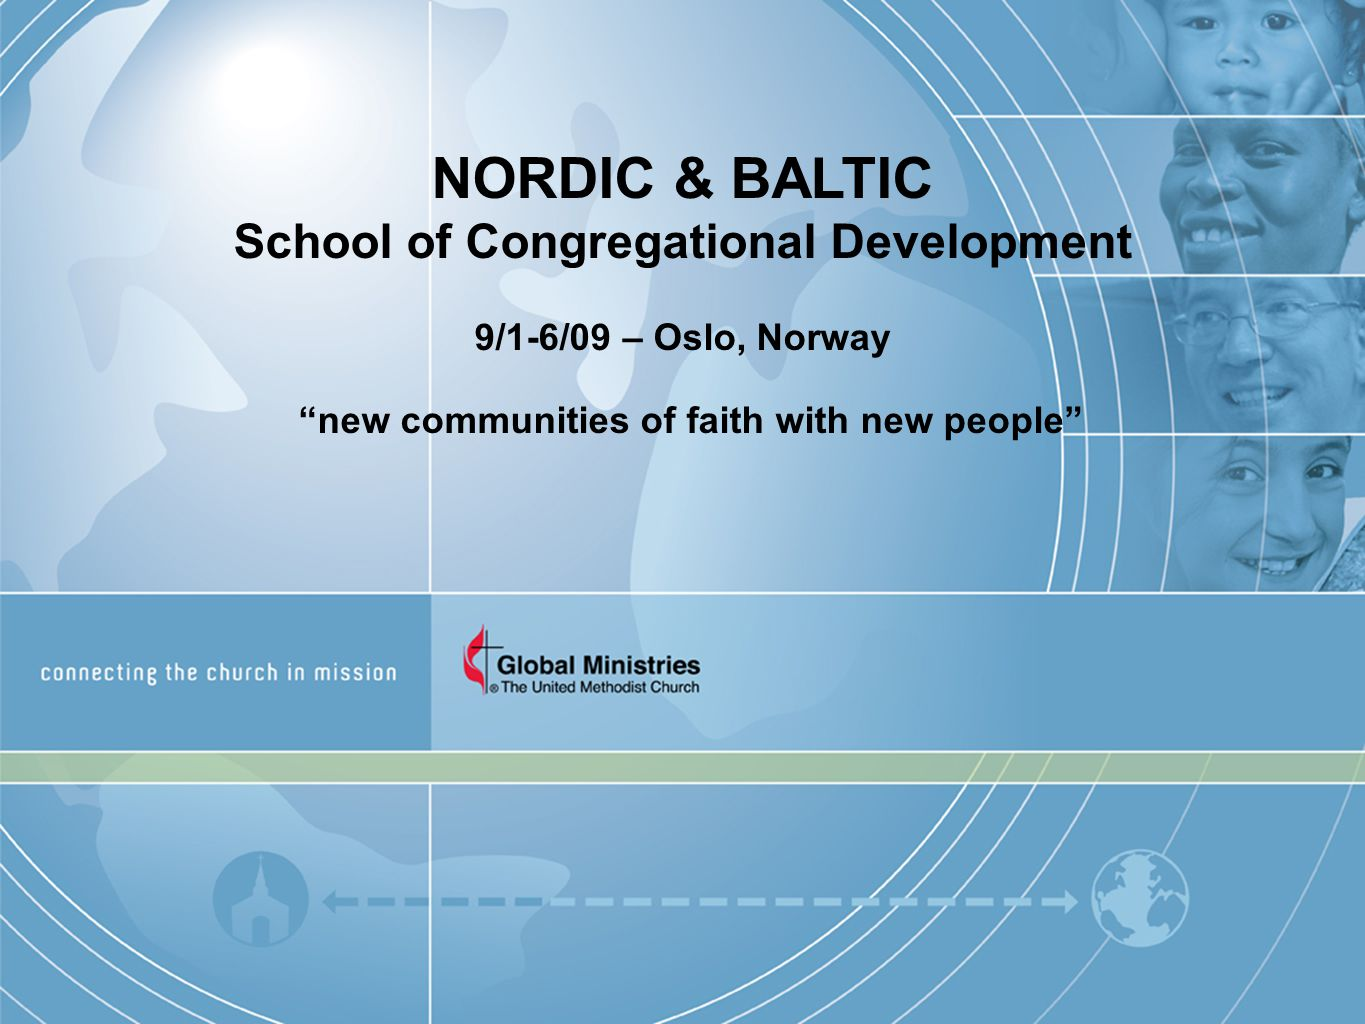 NORDIC & BALTIC School of Congregational Development 9/1-6/09 – Oslo, Norway new communities of faith with new people